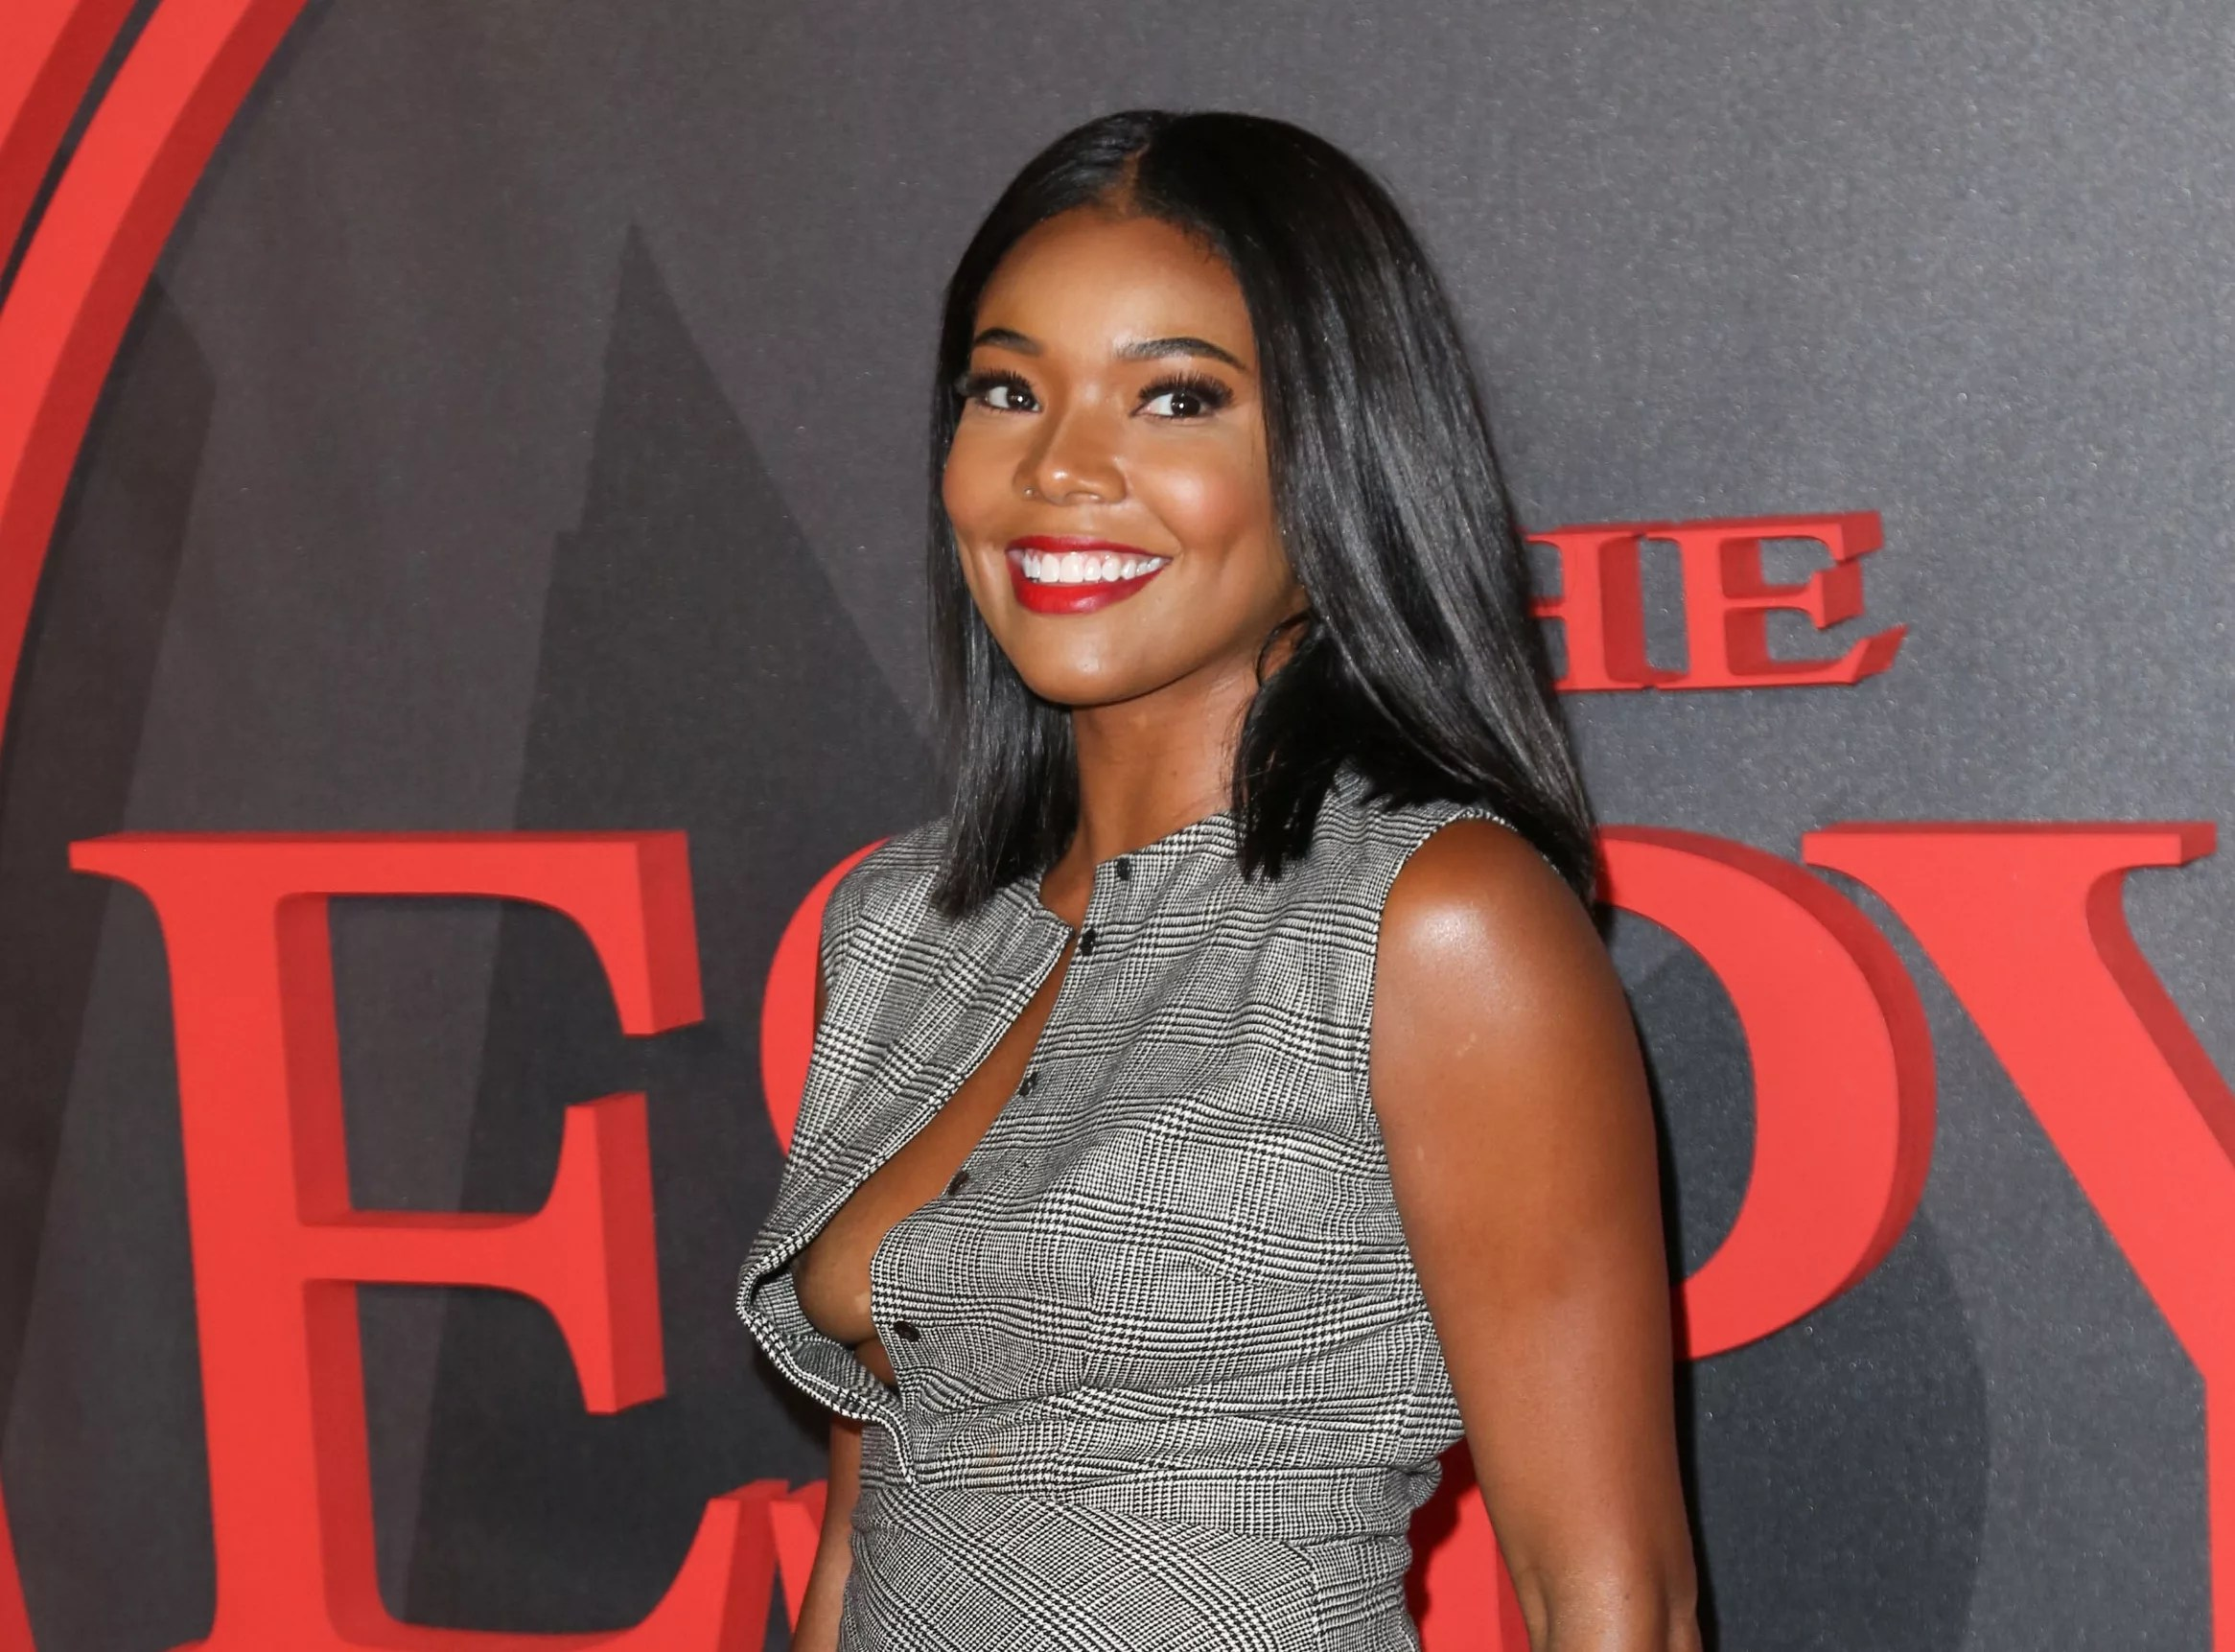 Gabrielle Union Nude Photos Full Updated Leak